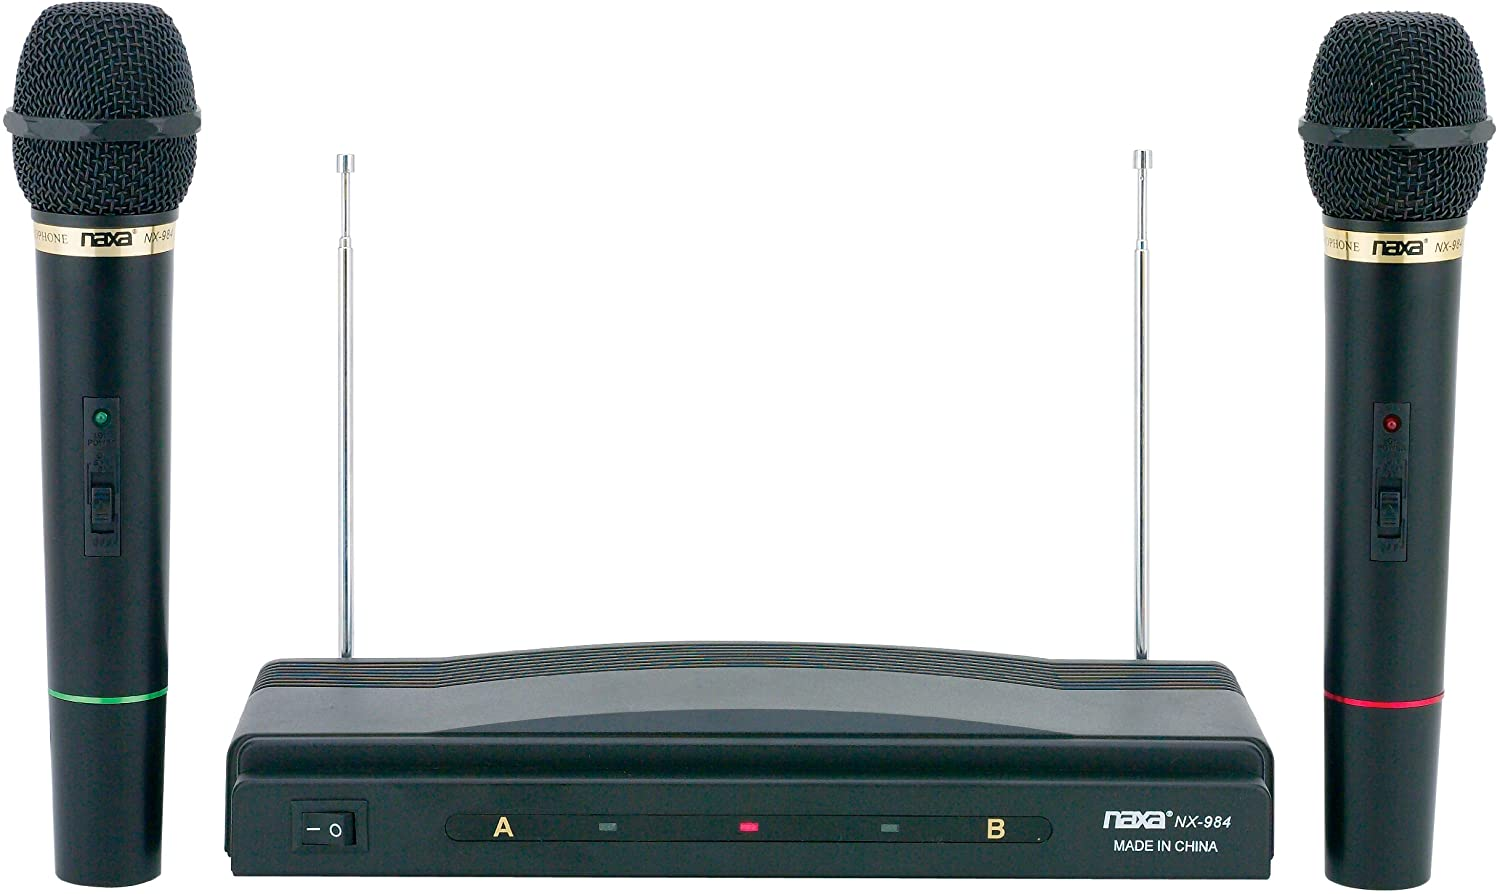 Naxa Electronics NAM-984 Dual Wireless Microphone System